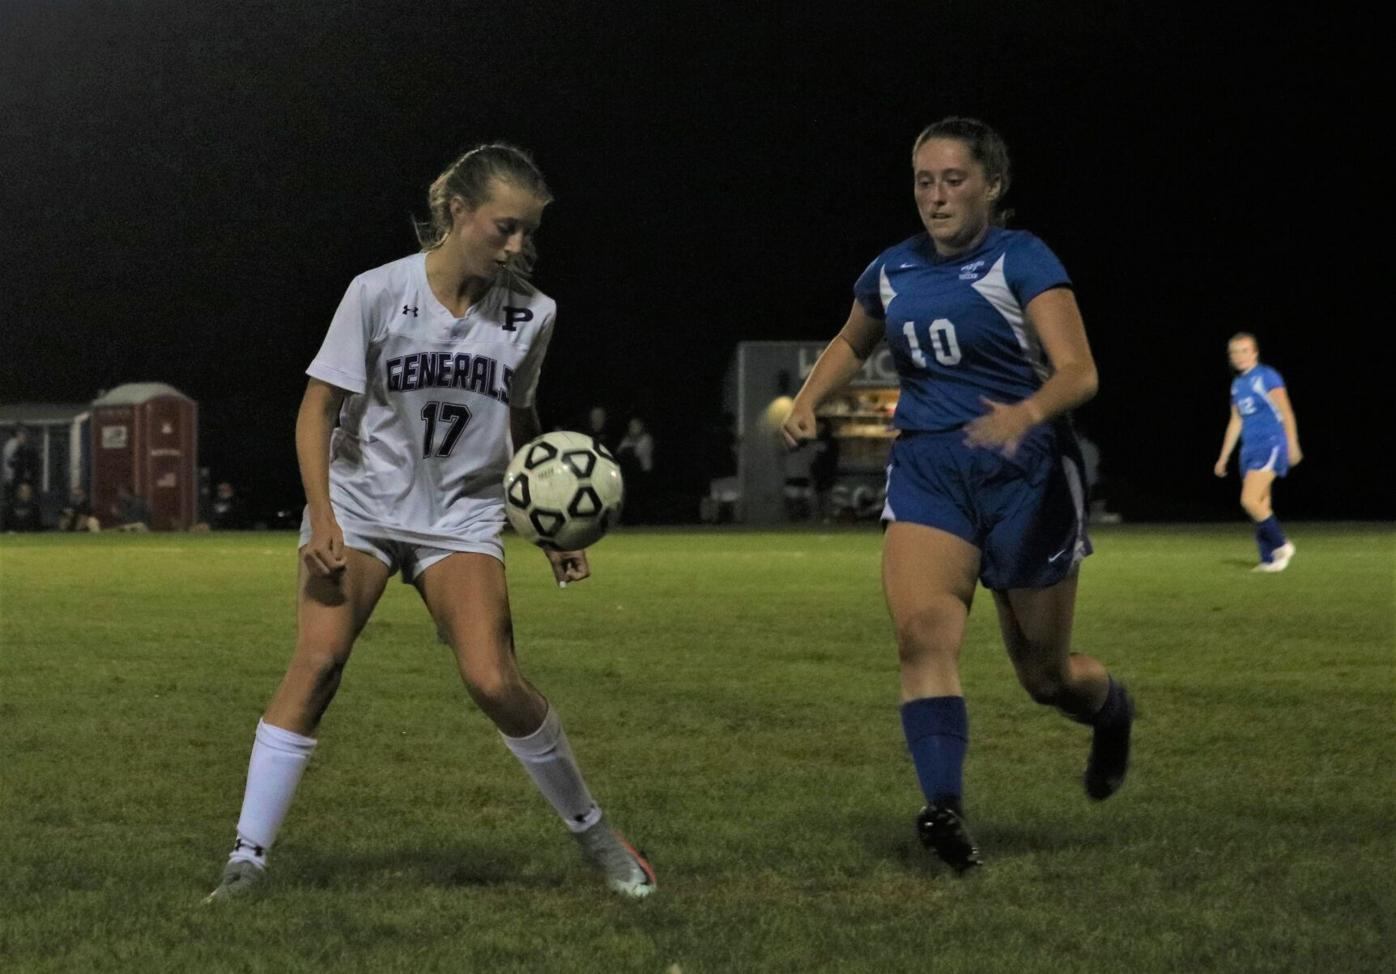 allie schnopp and claire naef play soccer